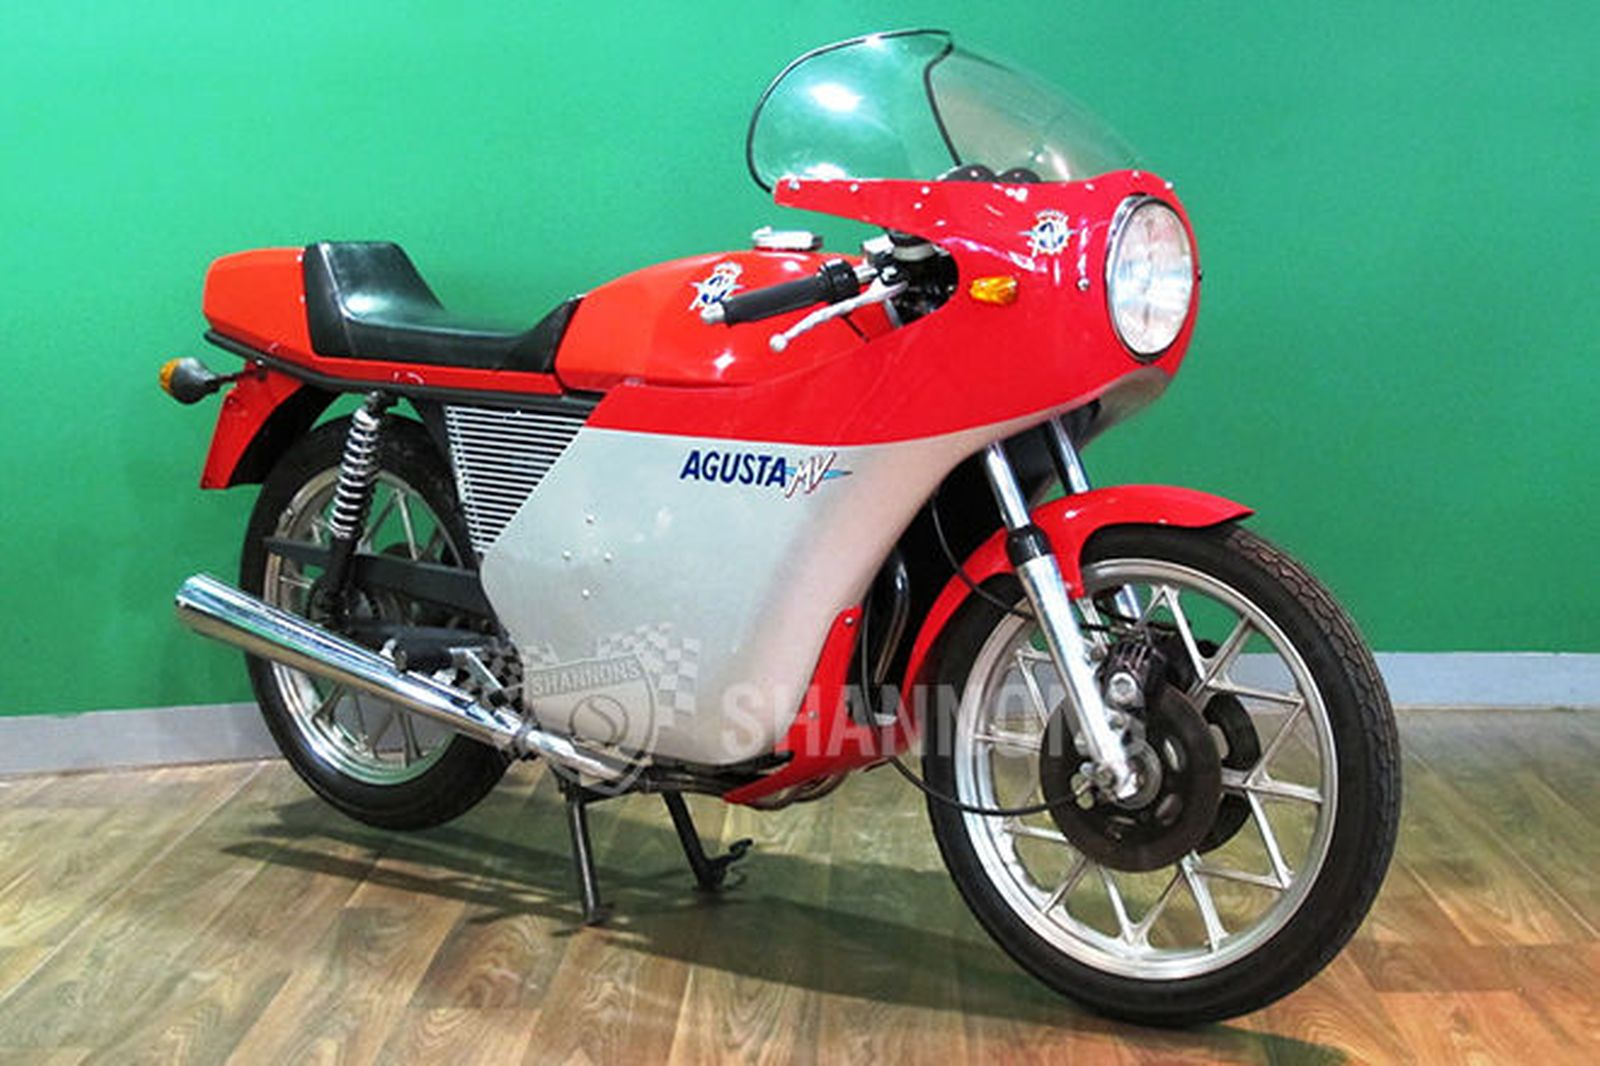 MV Agusta 350 S images #113559